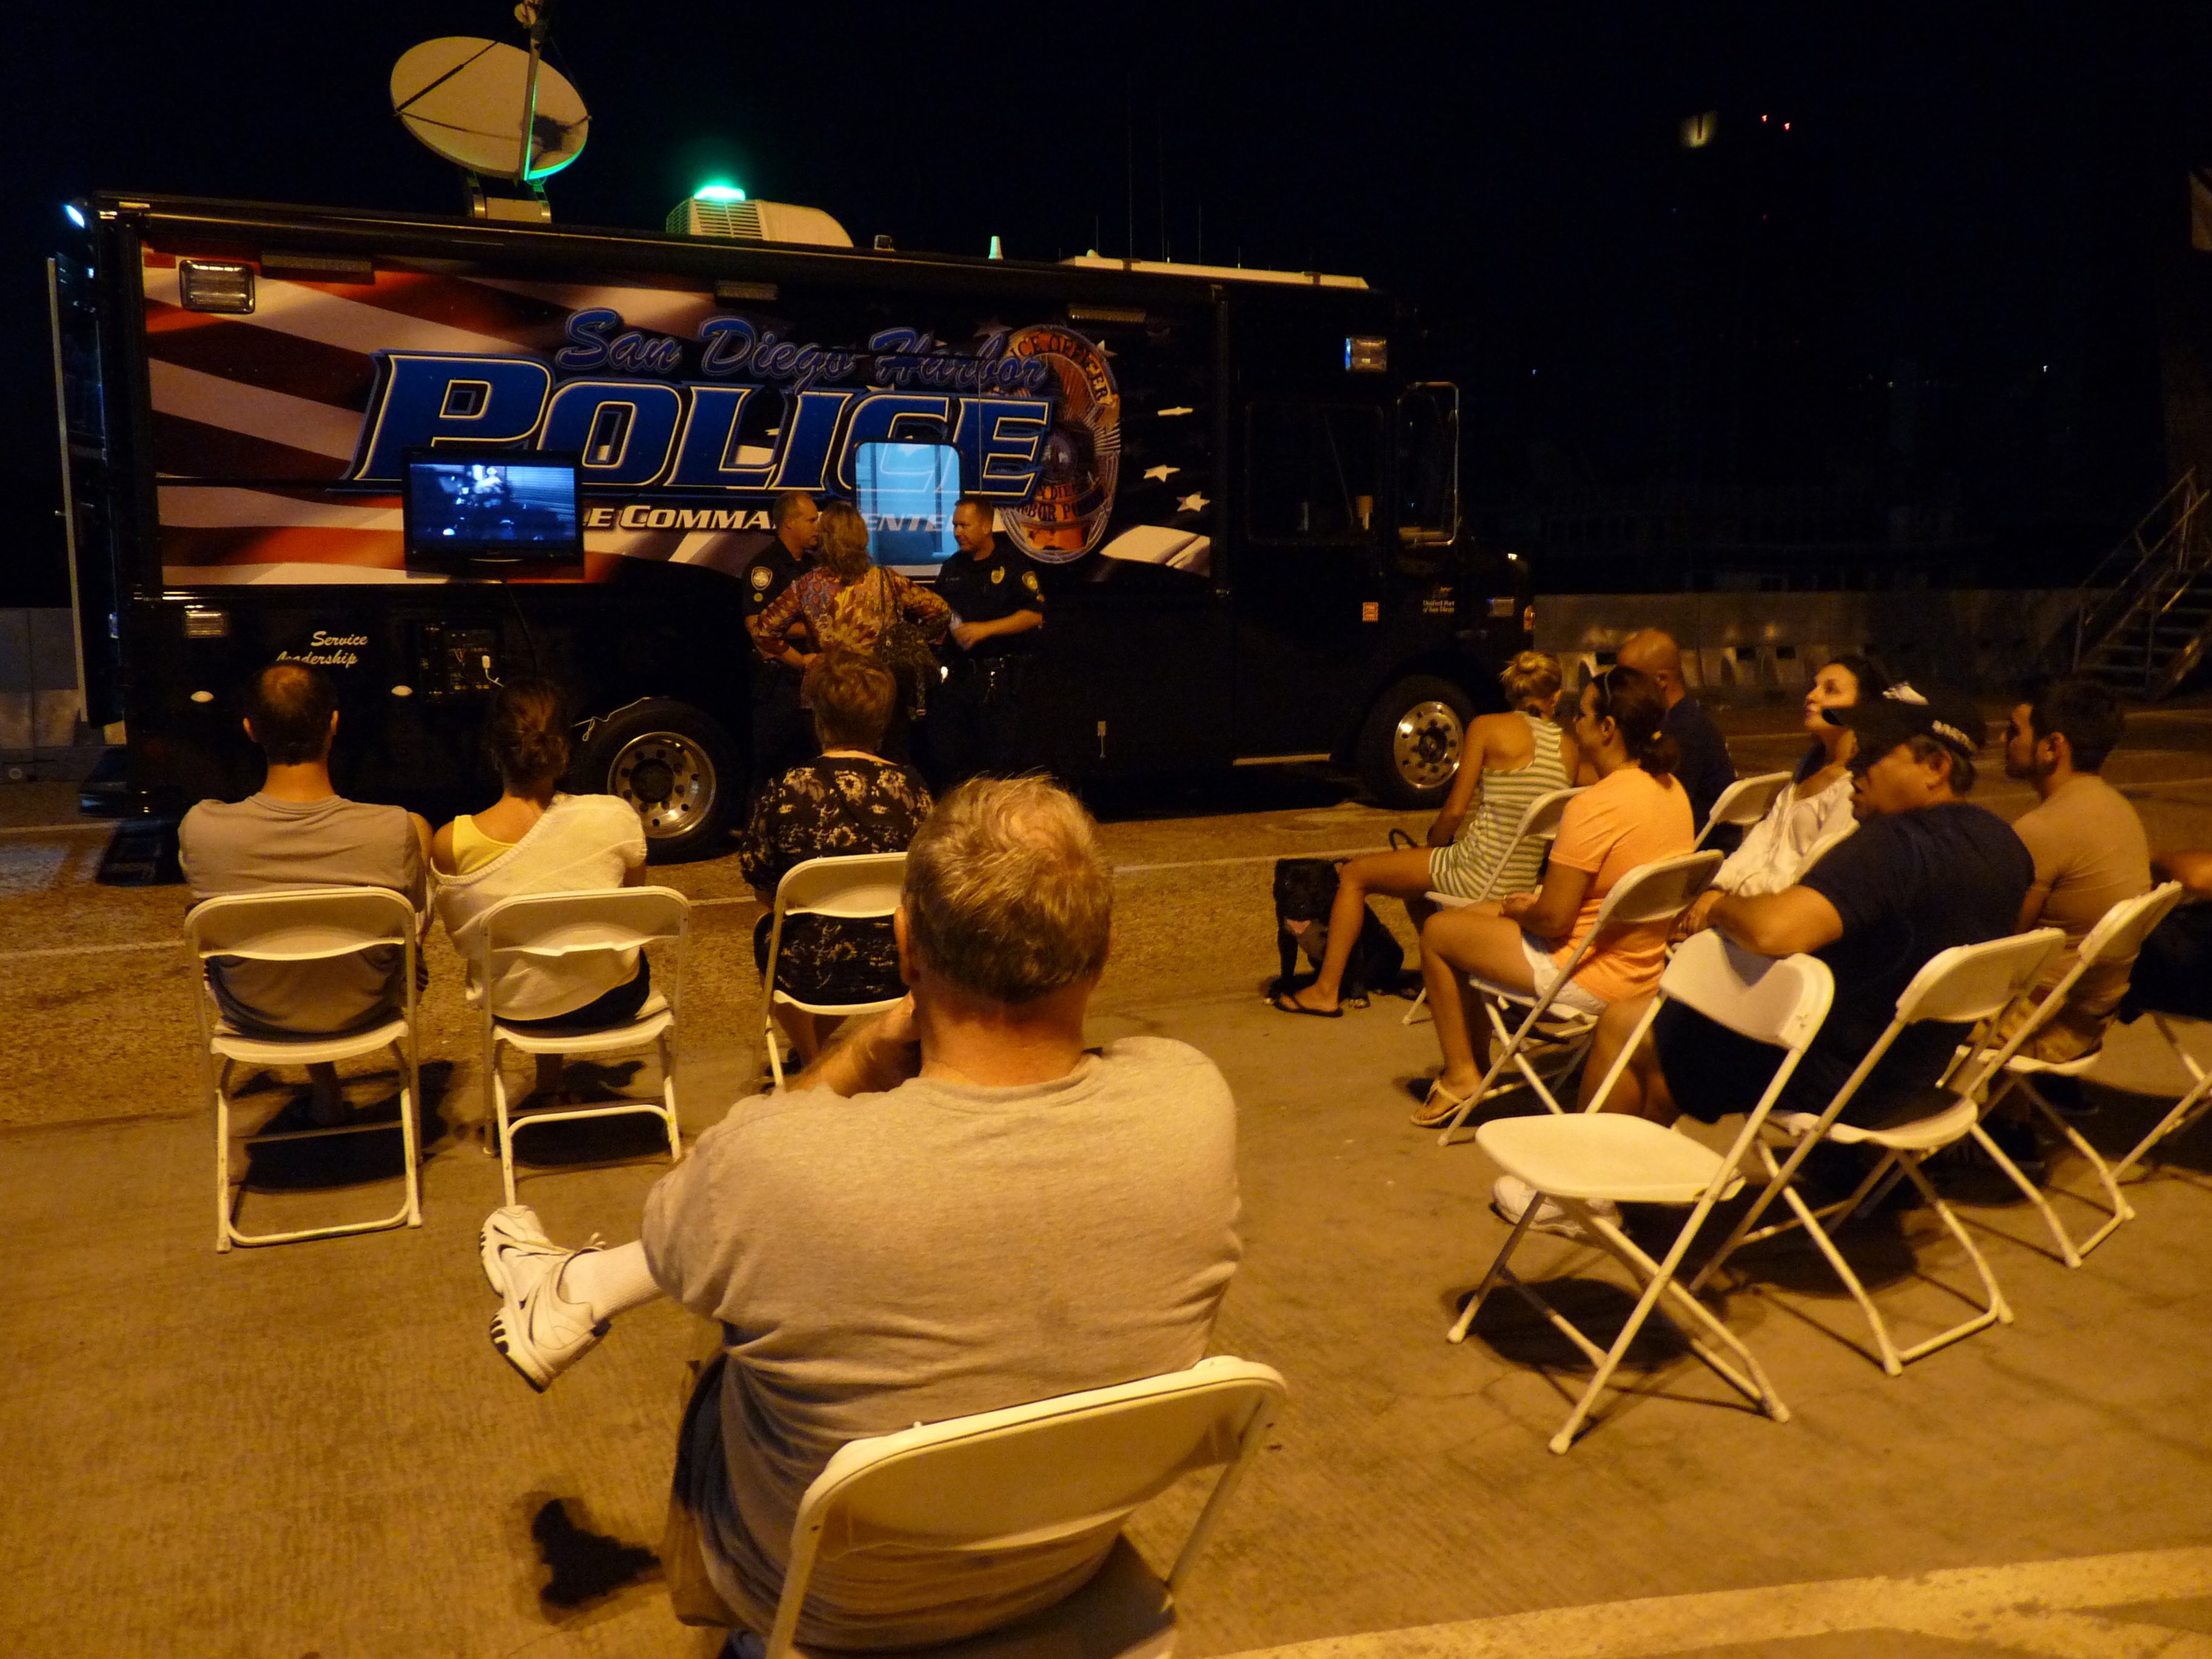 This was at the Broadway Pier during the blackout. People watched the big football game on the police truck. September 8, 2011